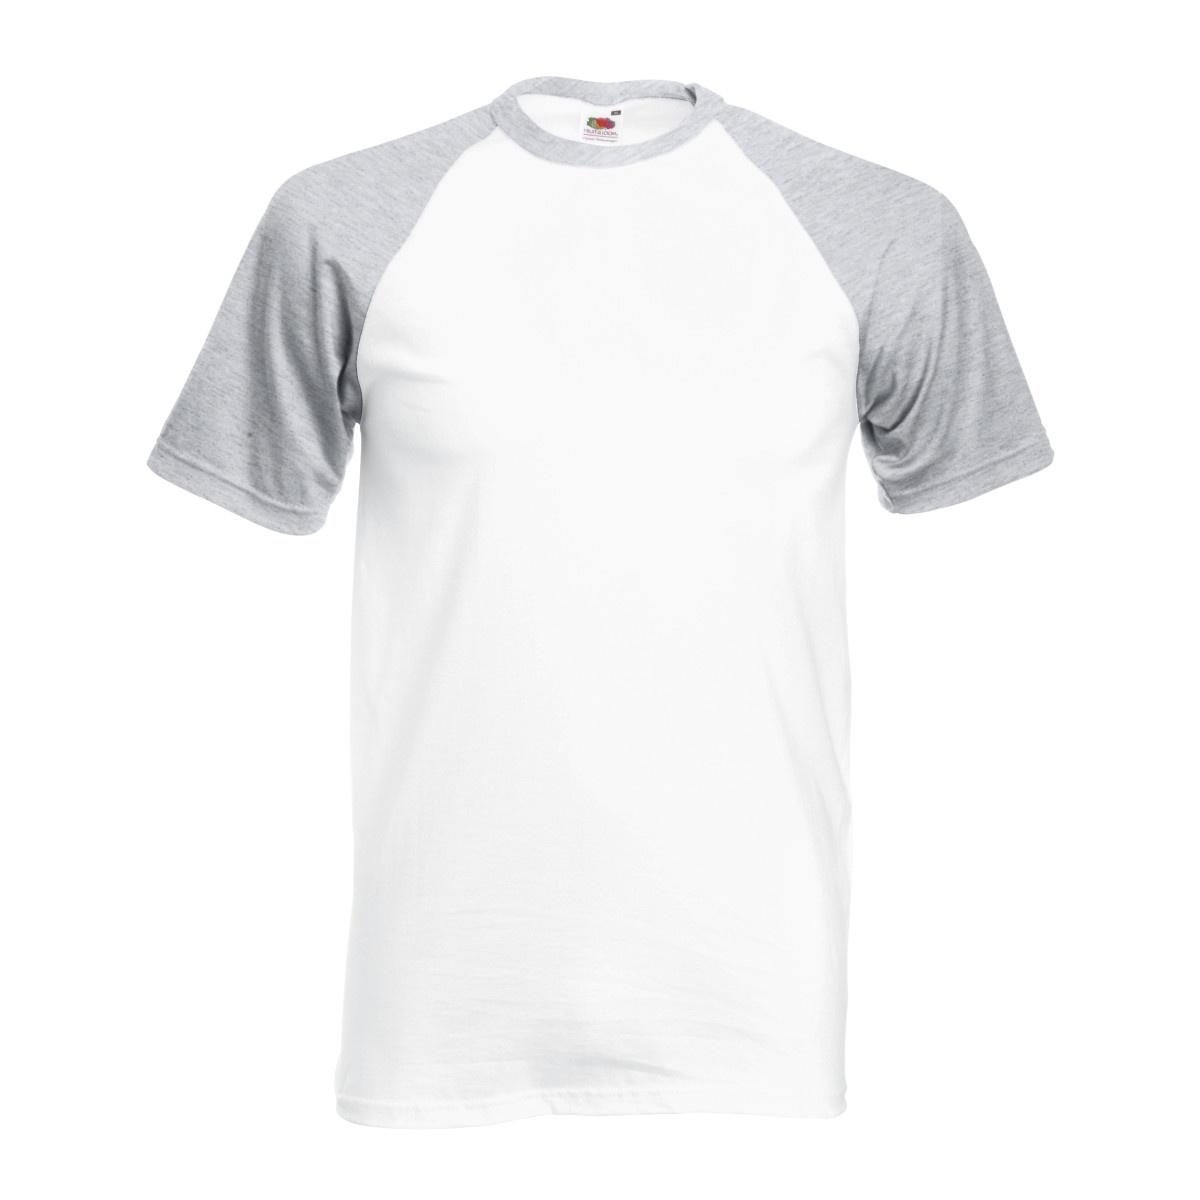 Short Sleeve Shirts: Free Shipping on orders over $45 at 440v.cf - Your Online Tops Store! Get 5% in rewards with Club O!